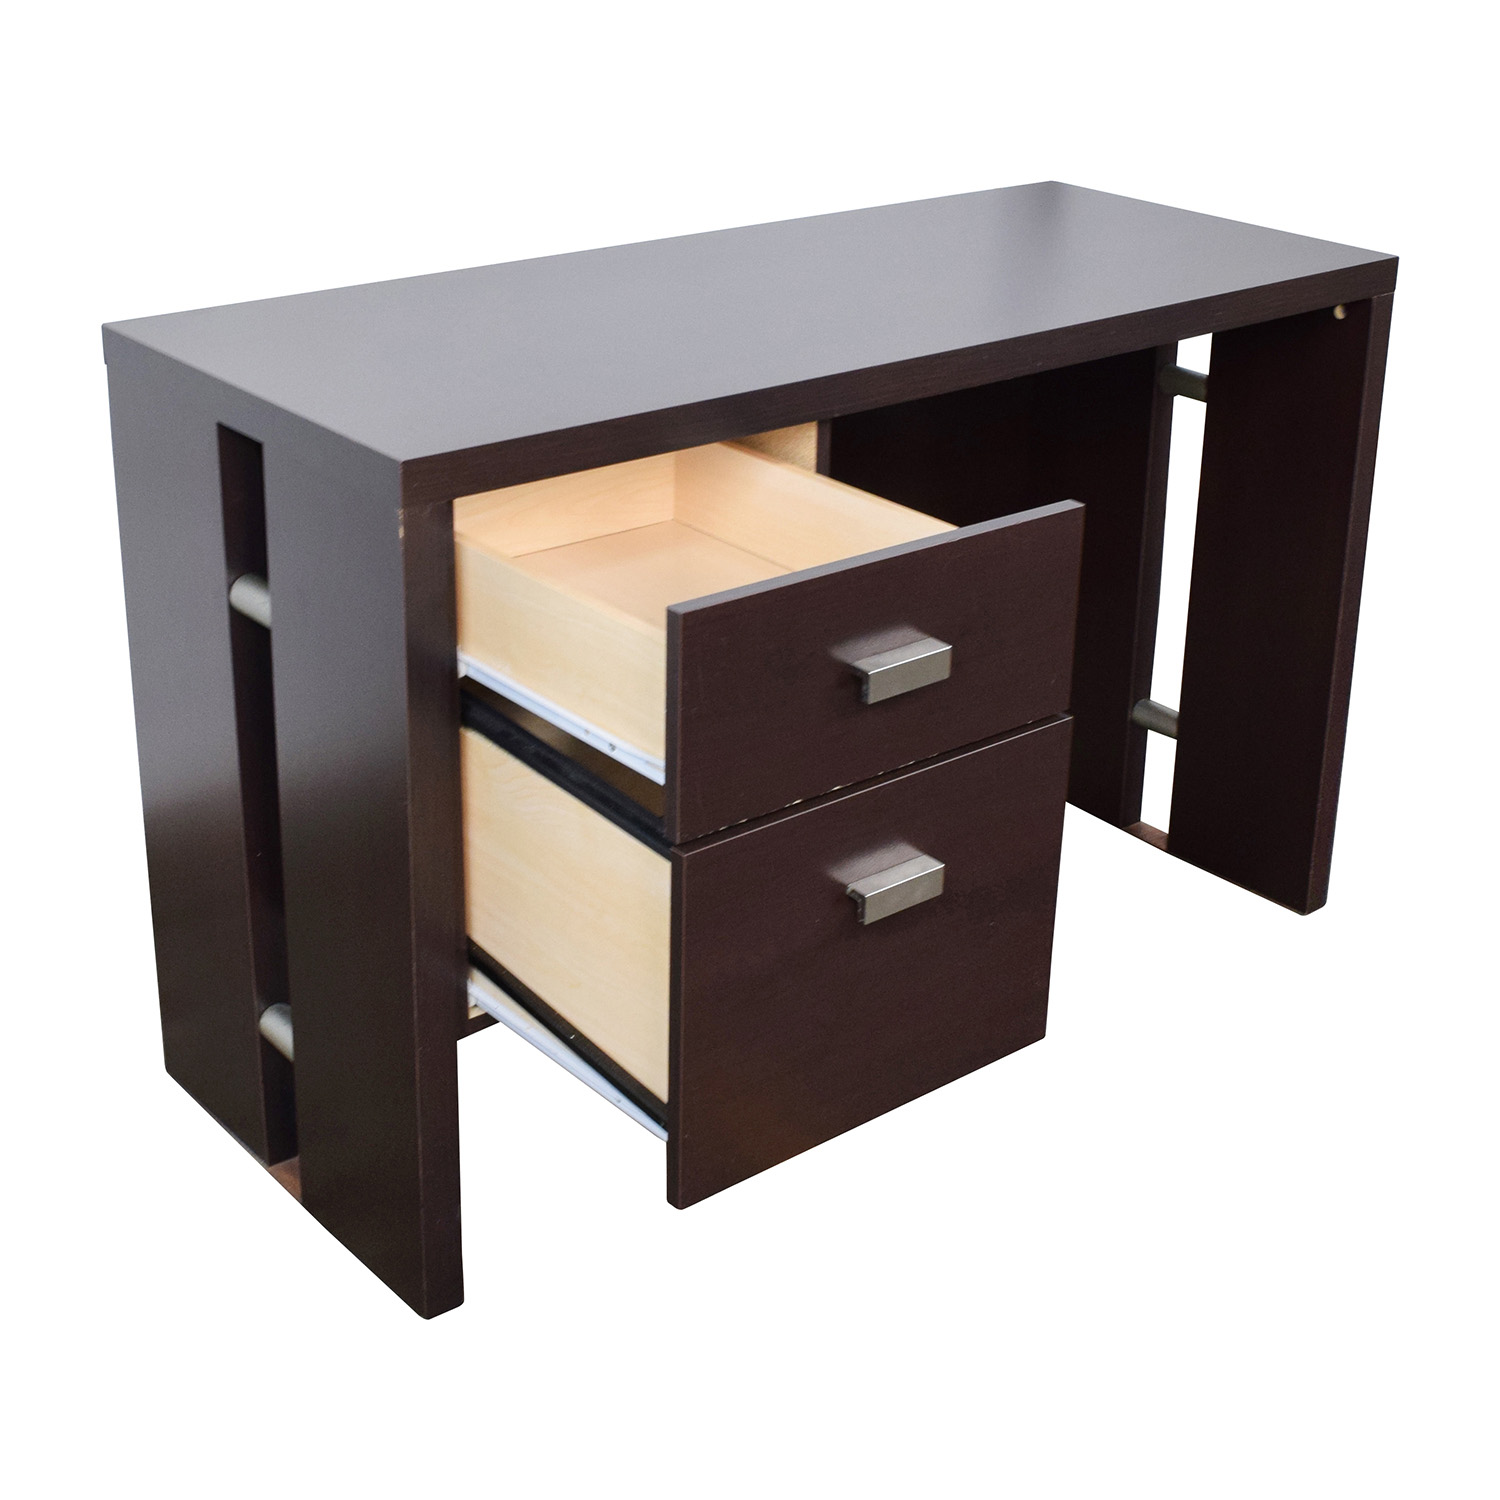 Walmart Walmart Brown Desk With Two-Drawers / Tables